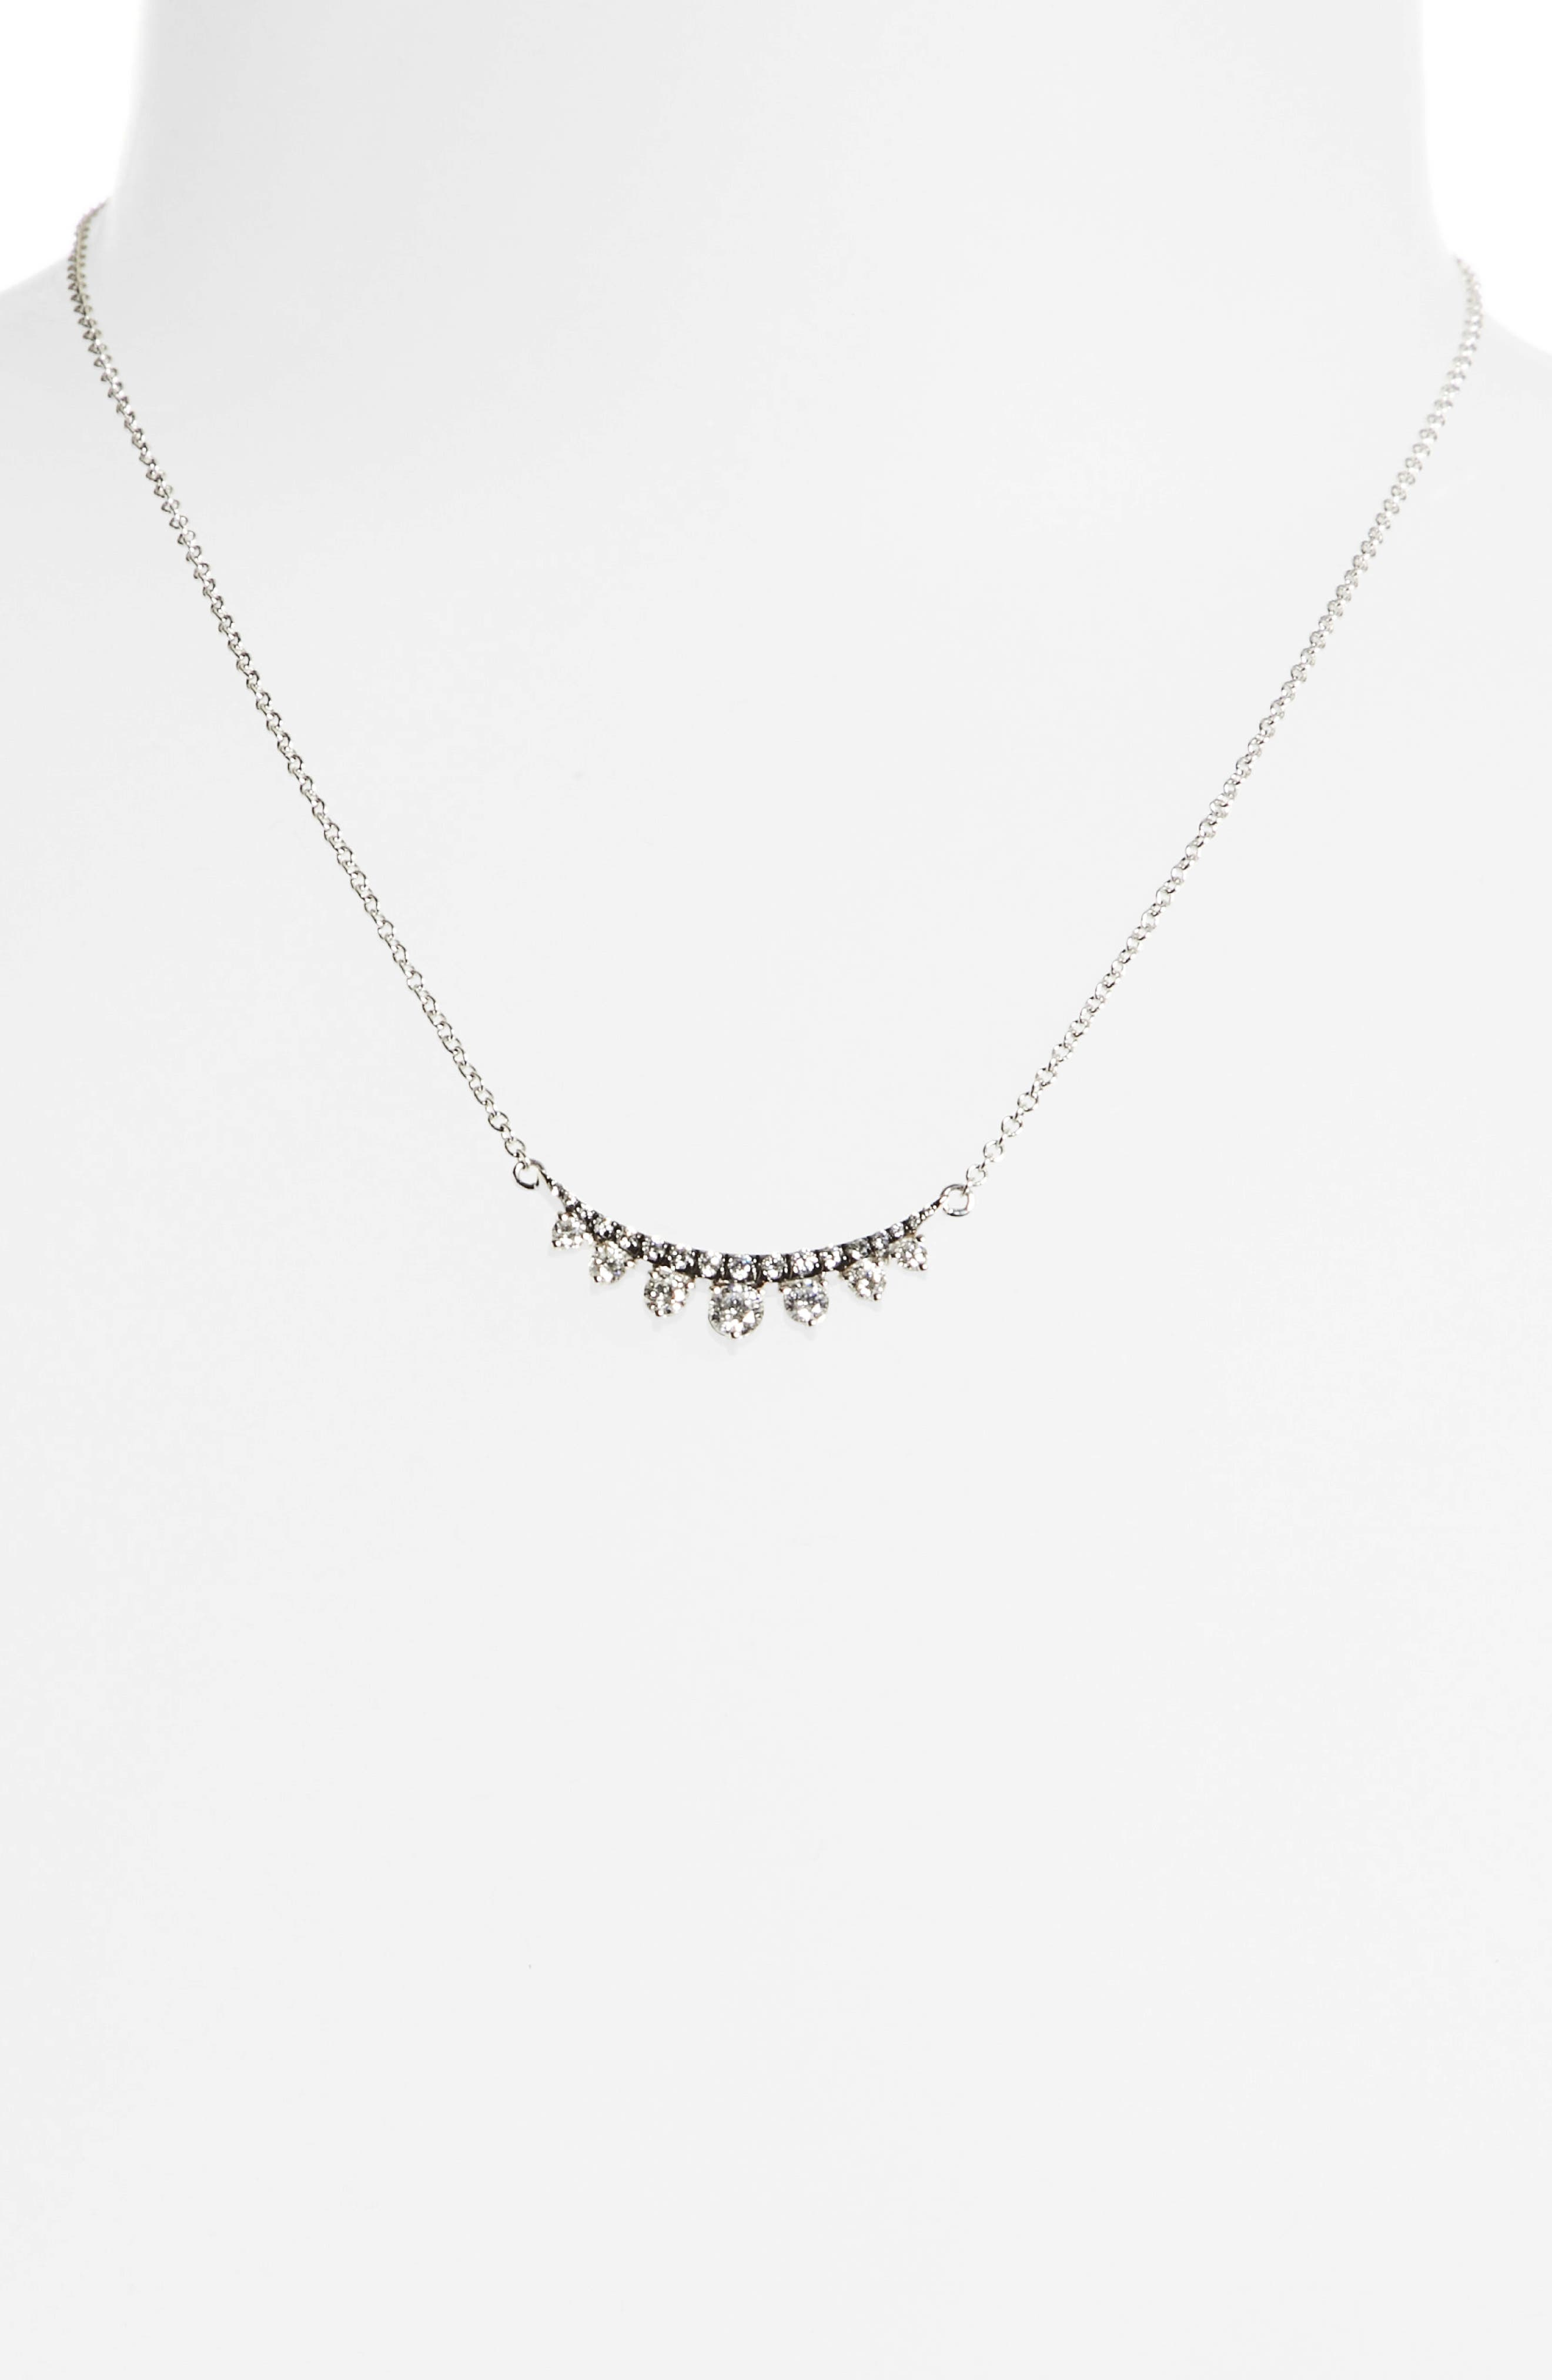 Alternate Image 1 Selected - Jemma Wynne Prive Luxe 18K White Gold & Diamond Necklace